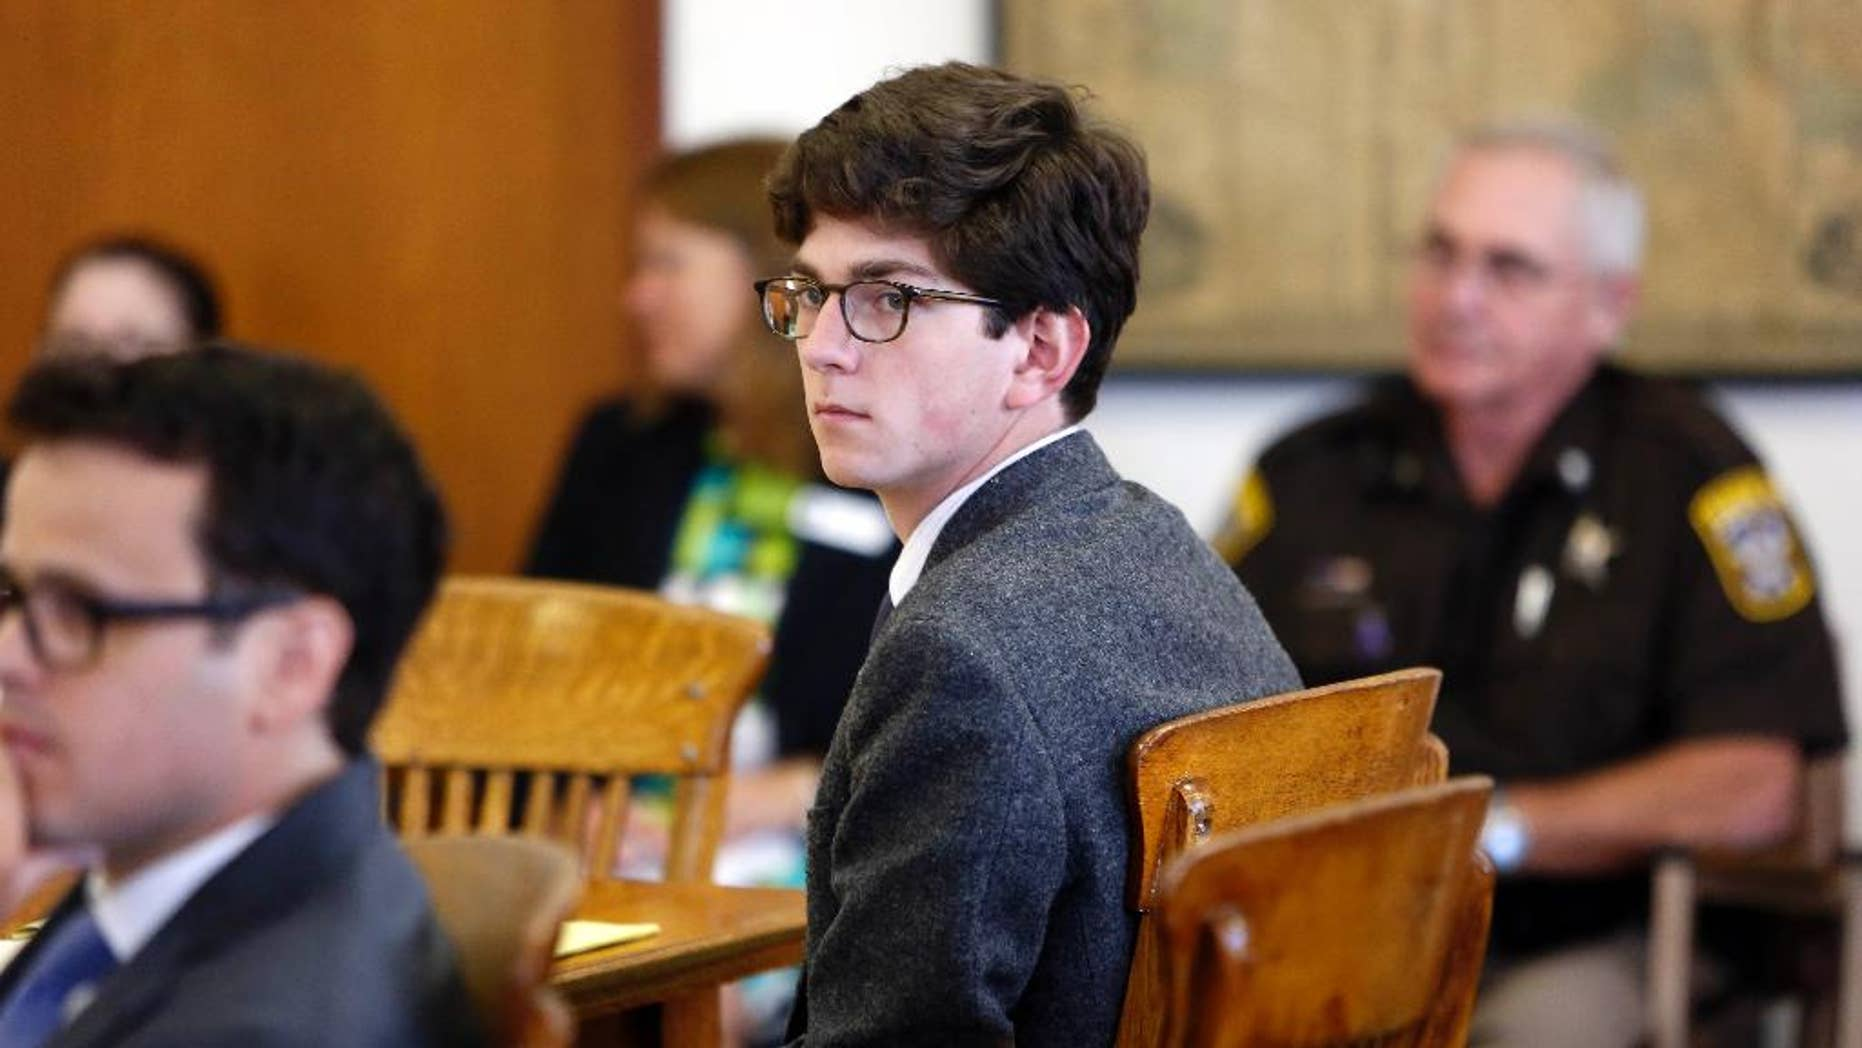 Owen Labrie looks around the courtroom during his trial in Concord, N.H. in August. (AP Photo/Jim Cole, Pool)